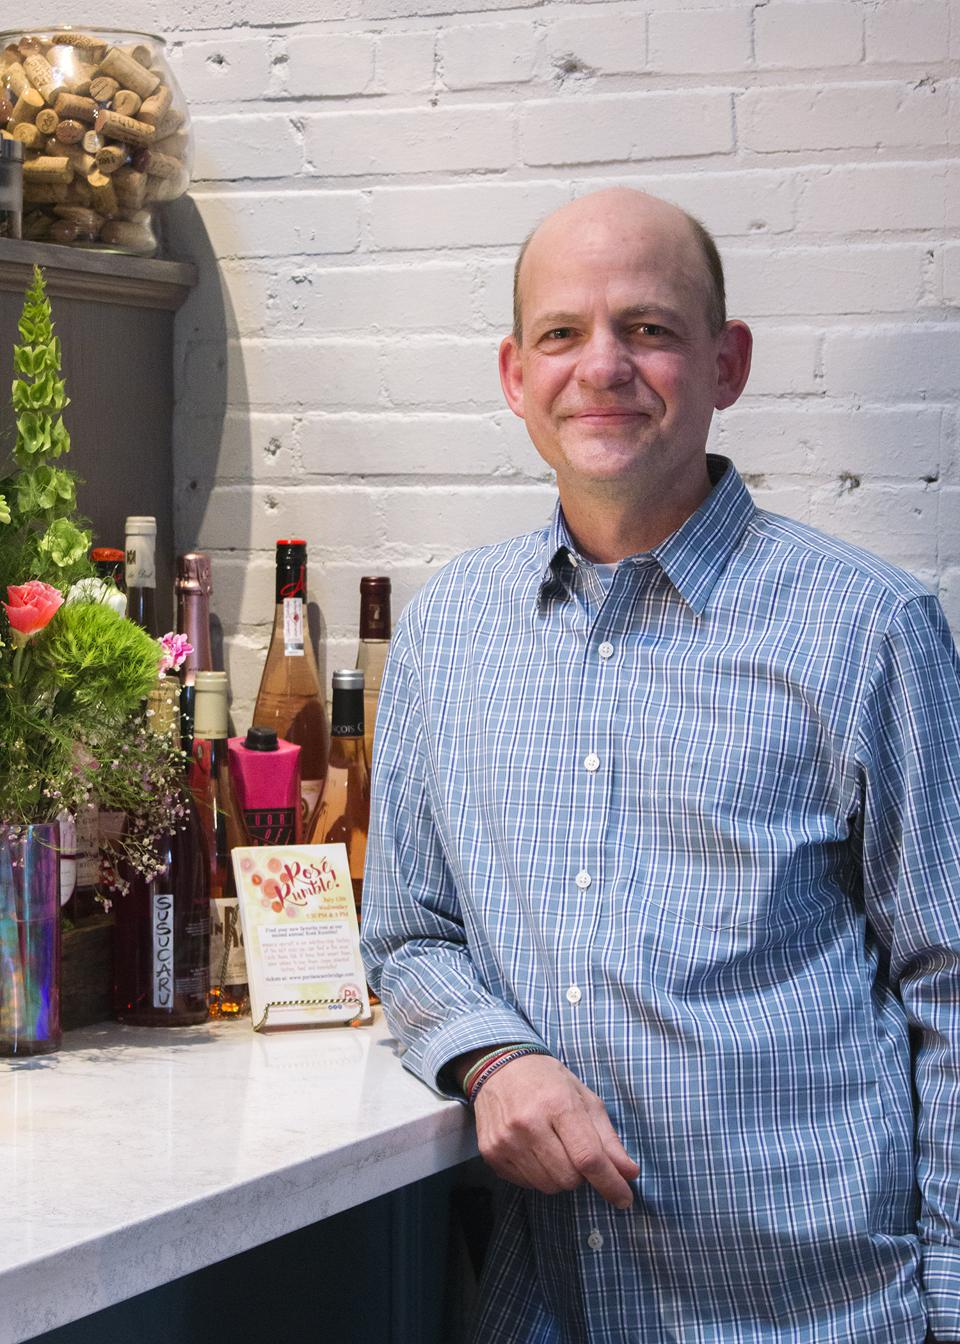 Man leaning on a counter with wine bottles.